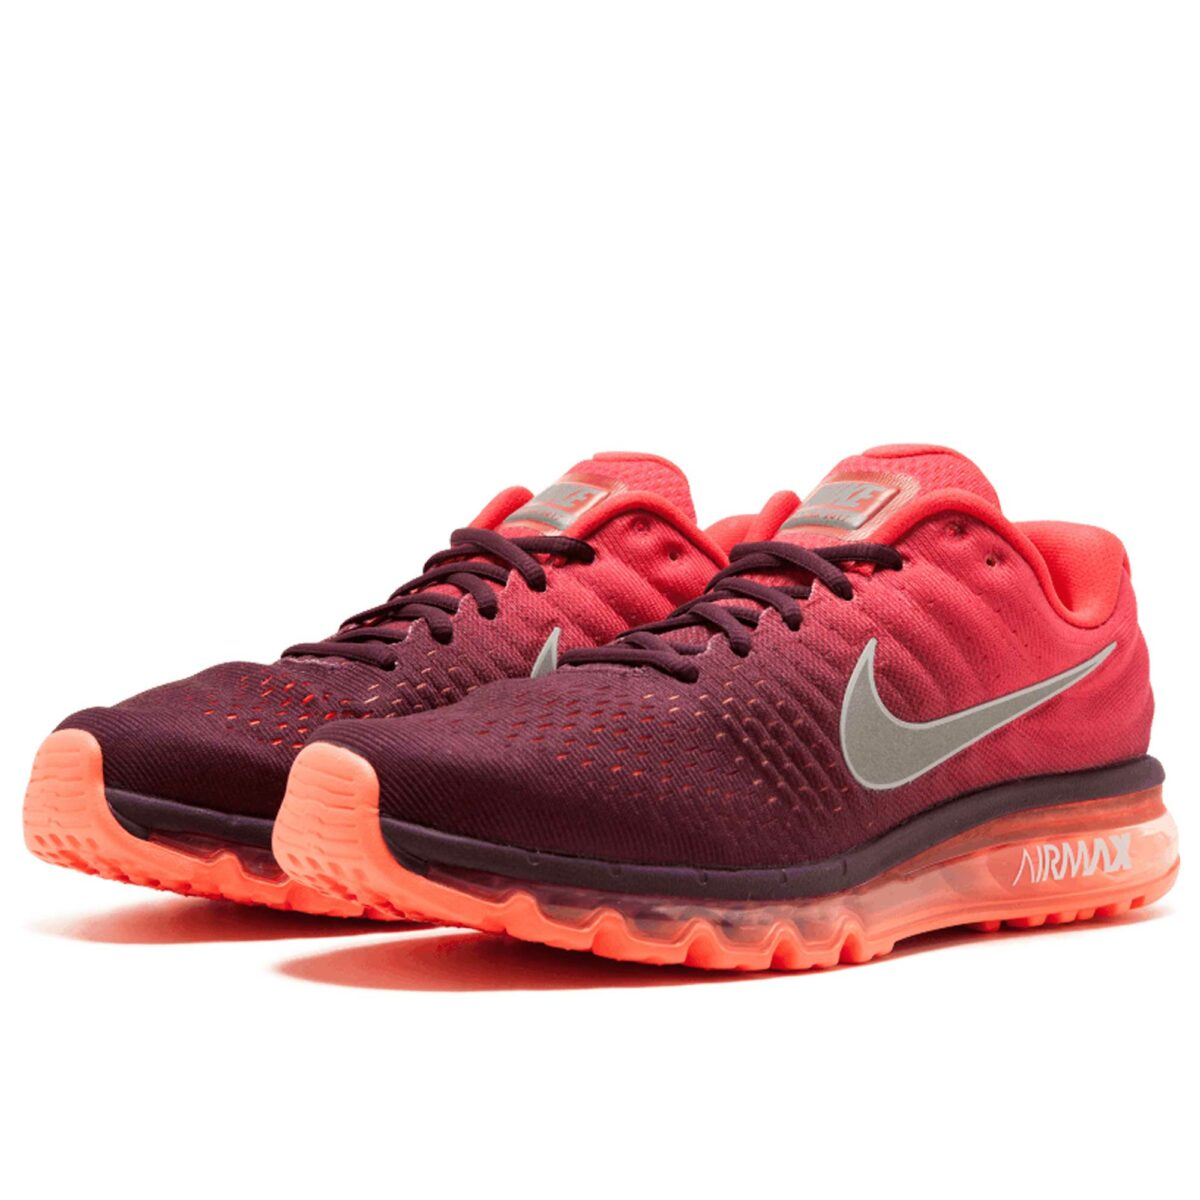 nike air max 2017 night maron red 849559_601 купить